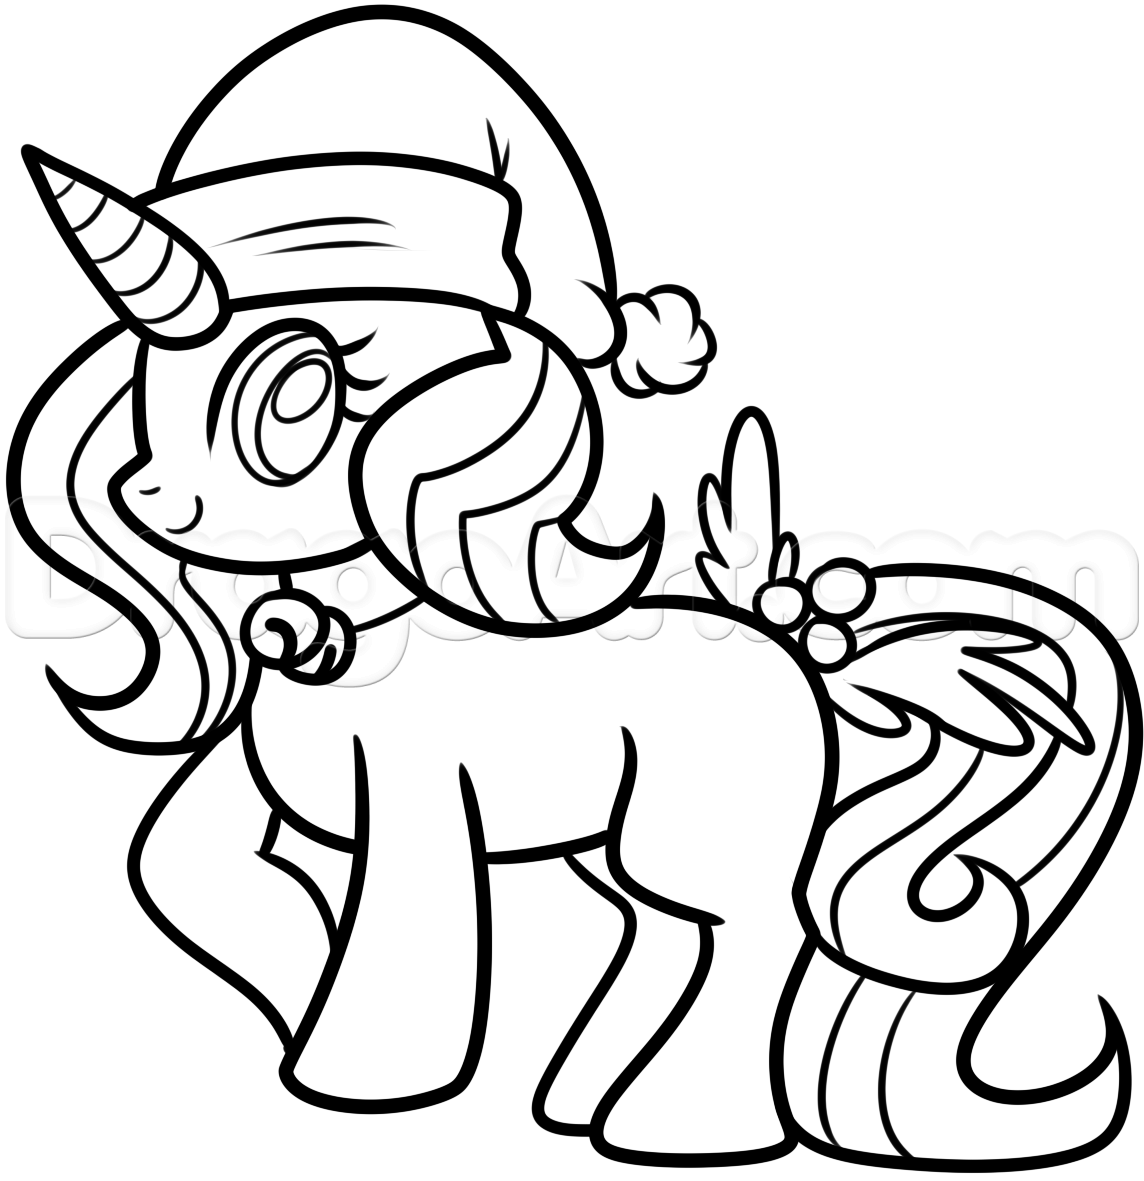 How To Draw A Christmas Unicorn Step By Step Christmas Stuff Seasonal Free Online Drawing Tutorial Unicorn Drawing Christmas Unicorn Unicorn Coloring Pages